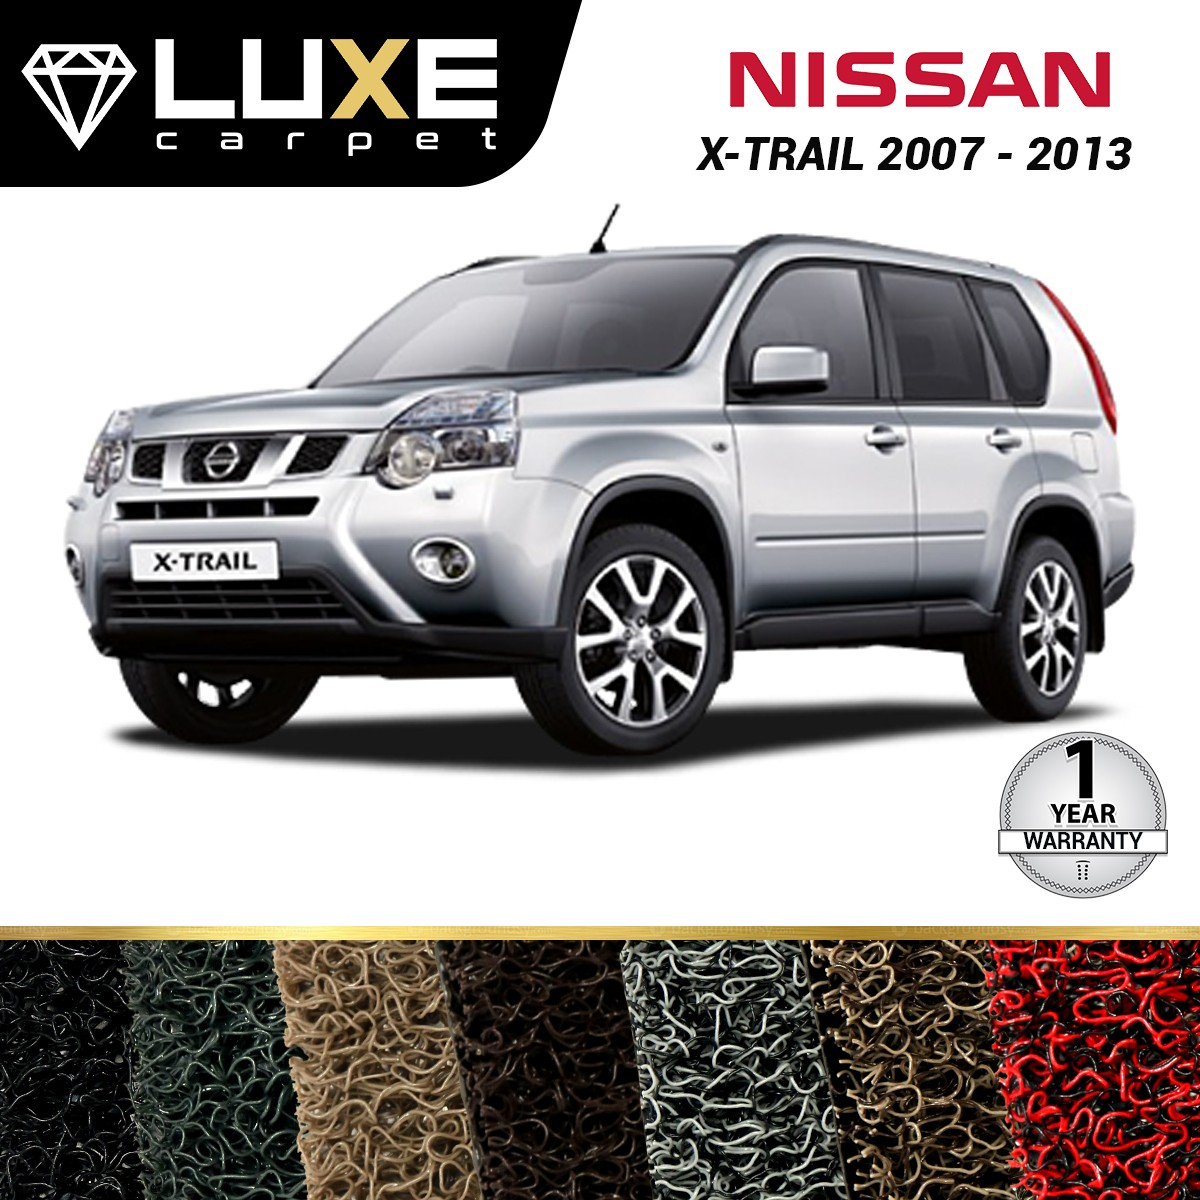 KARPET LUXE NISSAN XTRAIL 2007-2013 - GOLD SERIES - NON BAGASI